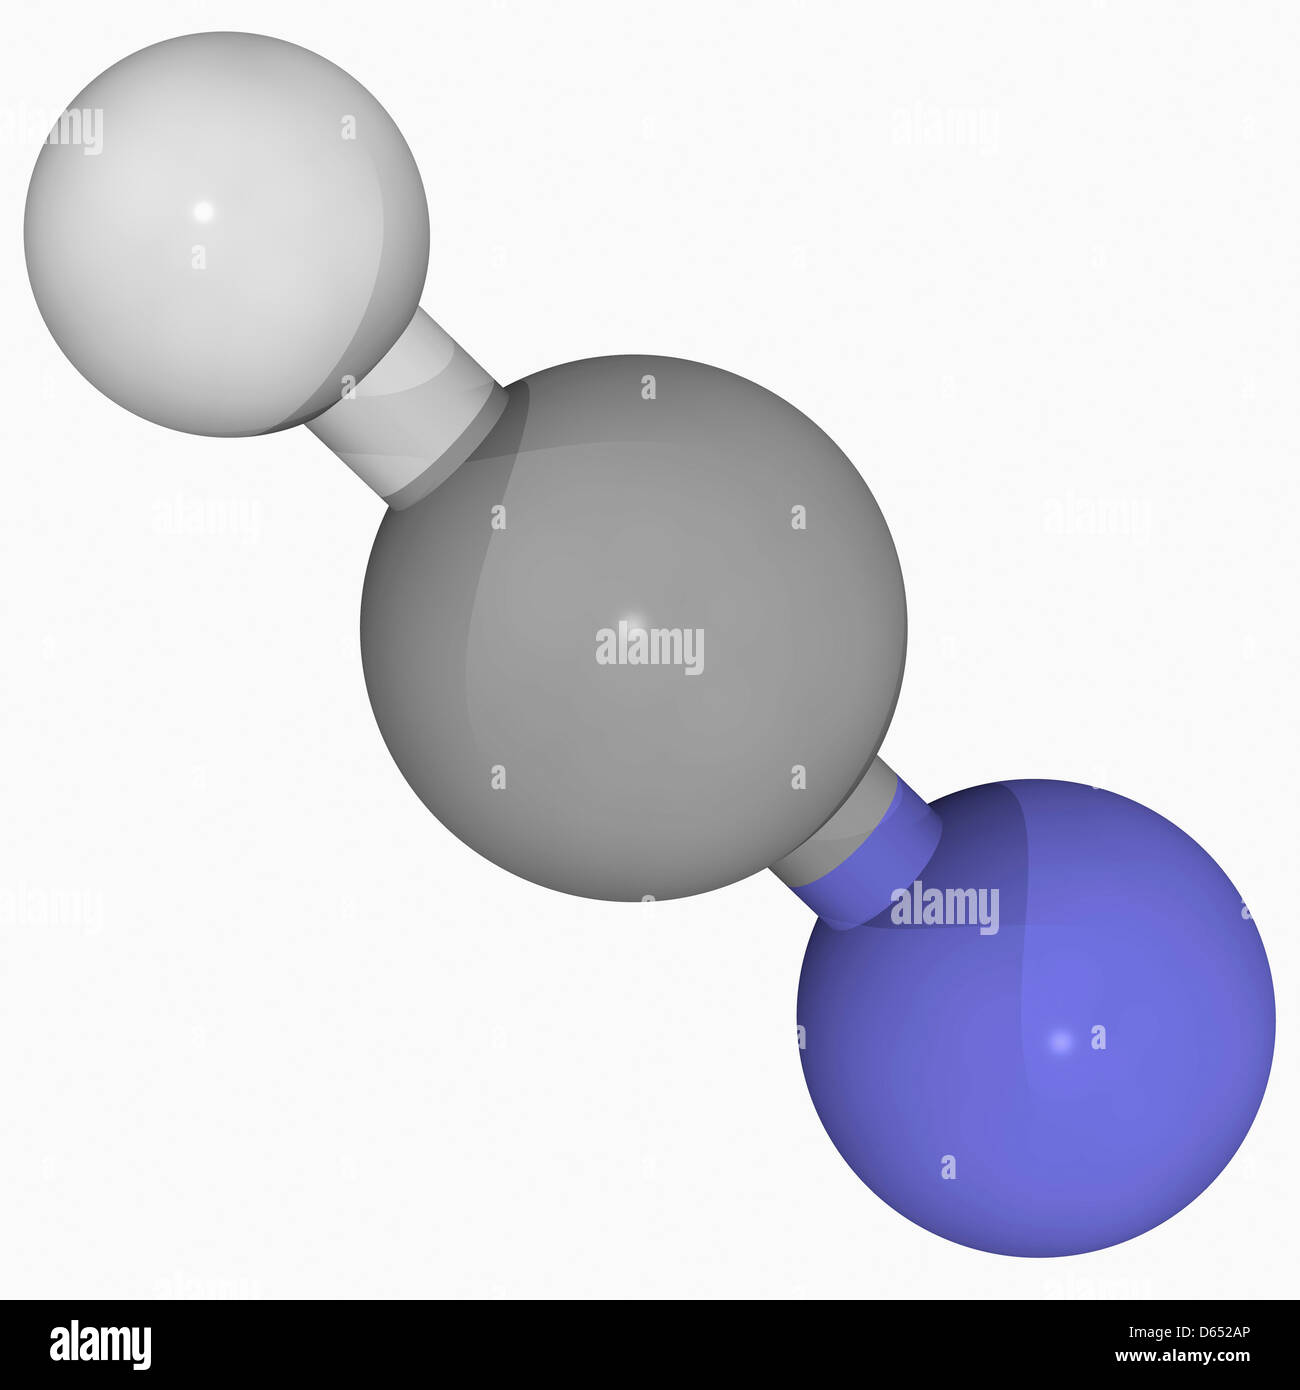 Cyanide Chemical Stock Photos Cyanide Chemical Stock Images Alamy